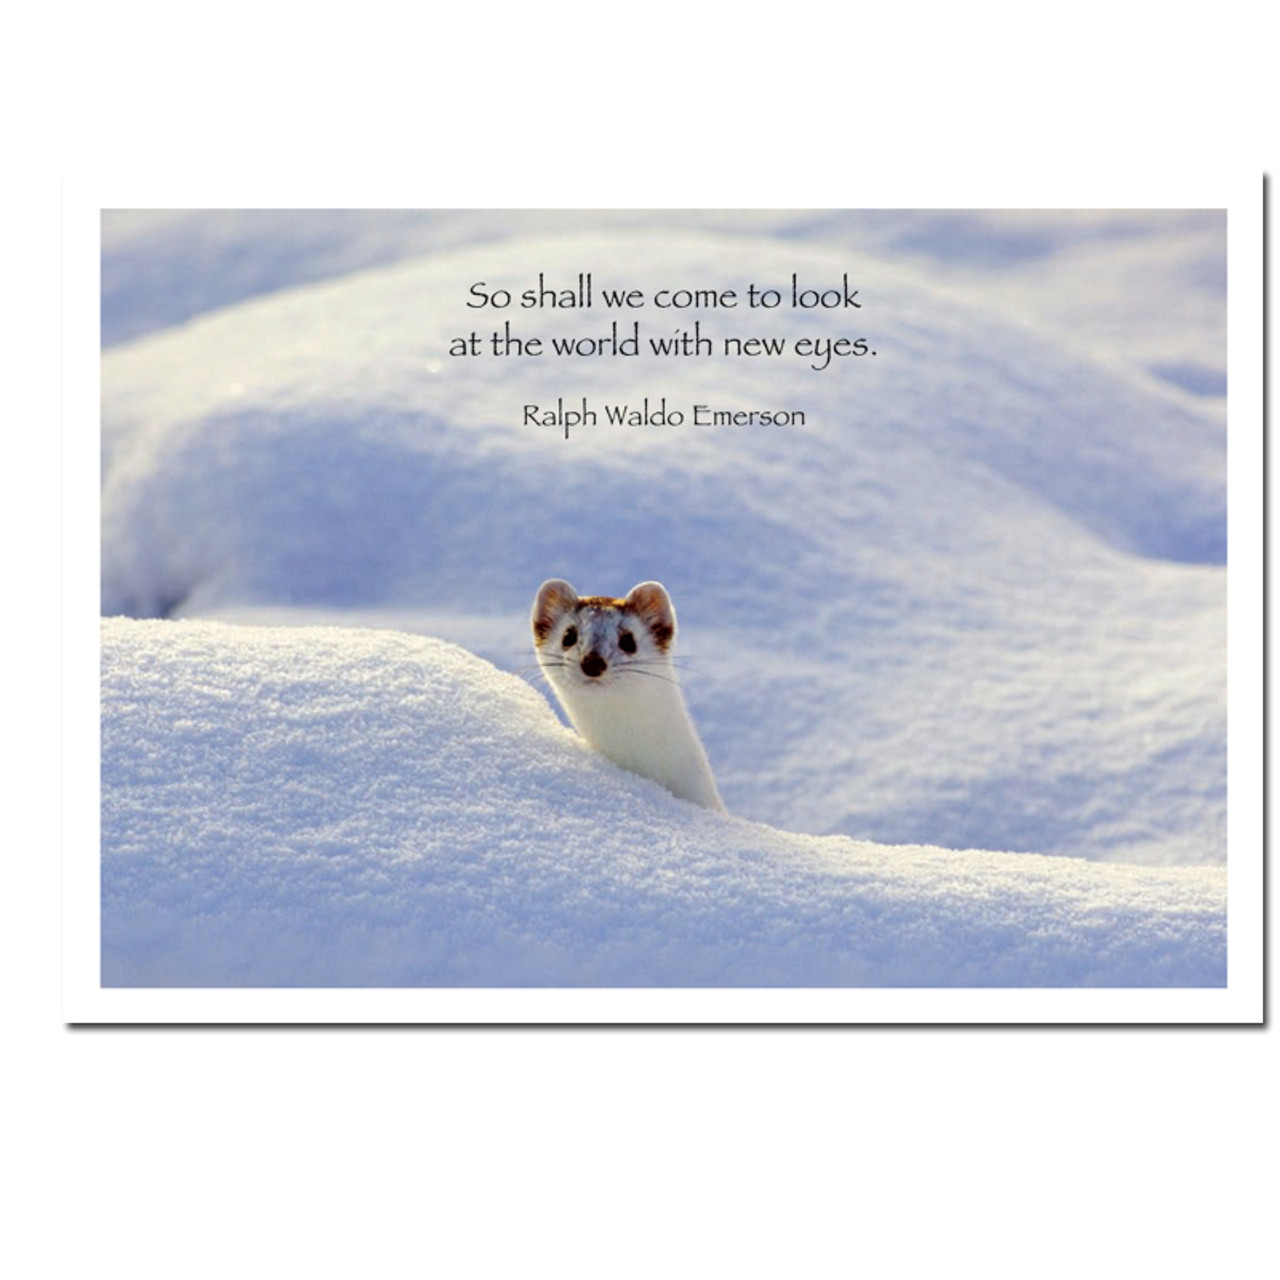 new eyes new years card cover photo shows white ermine looking out over a snowbank with